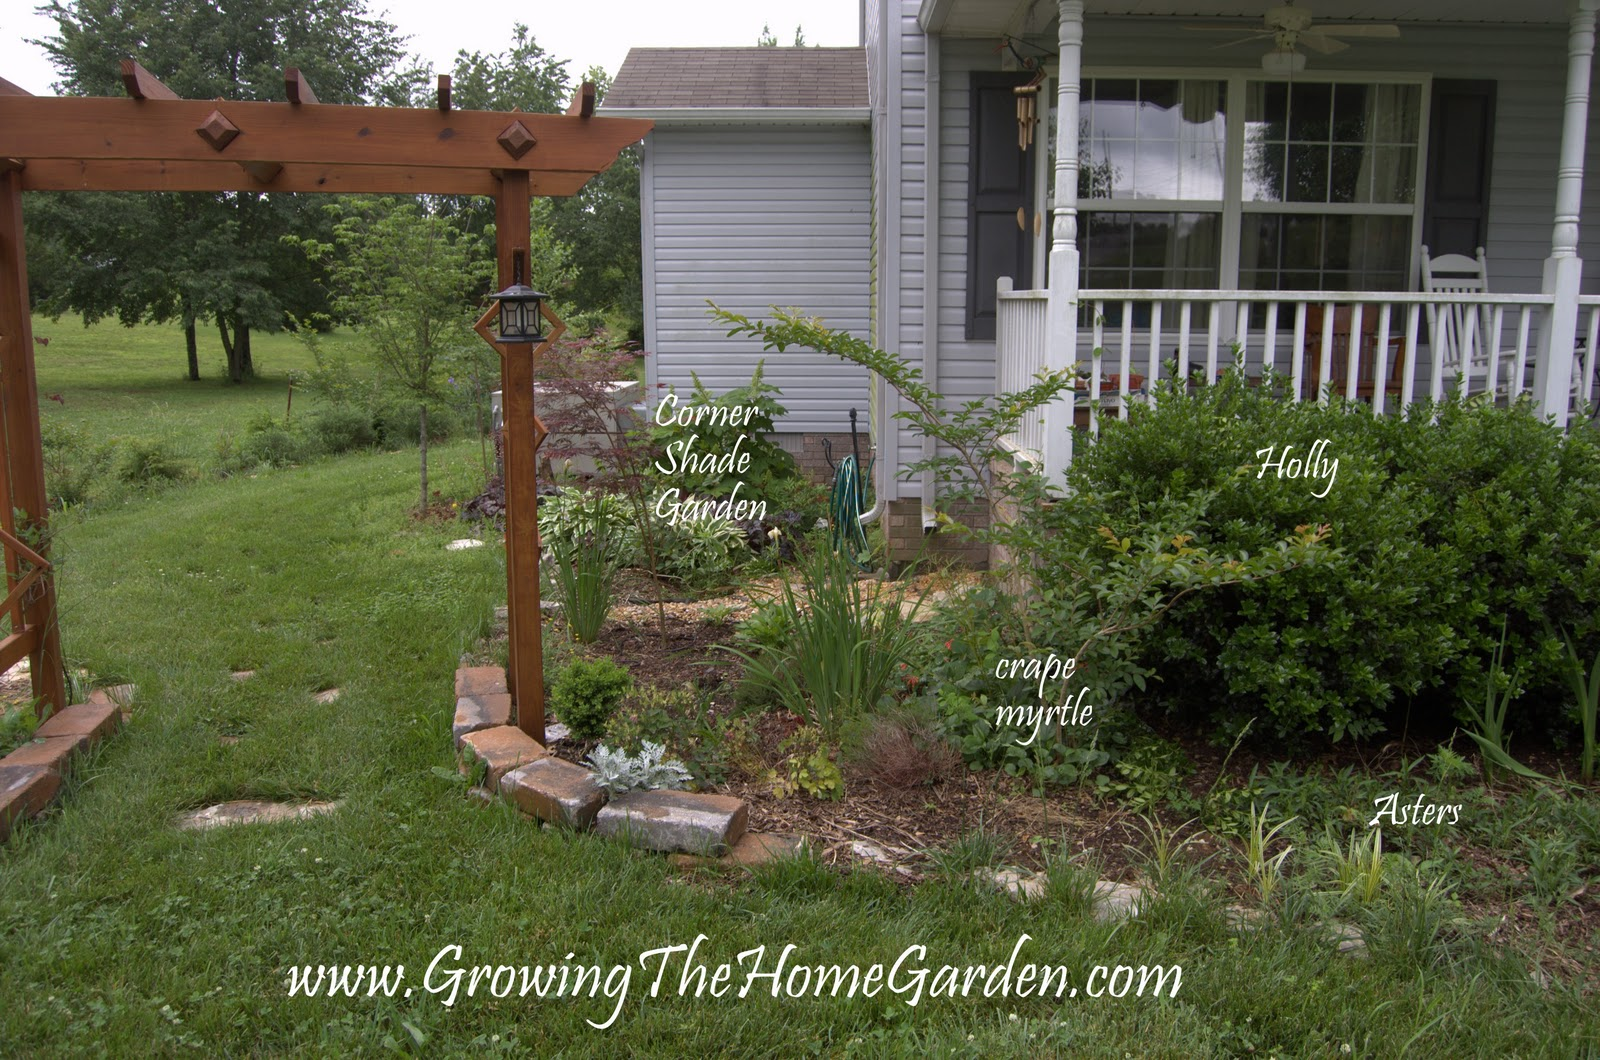 My front porch garden design project part 1 growing the for Design my front garden